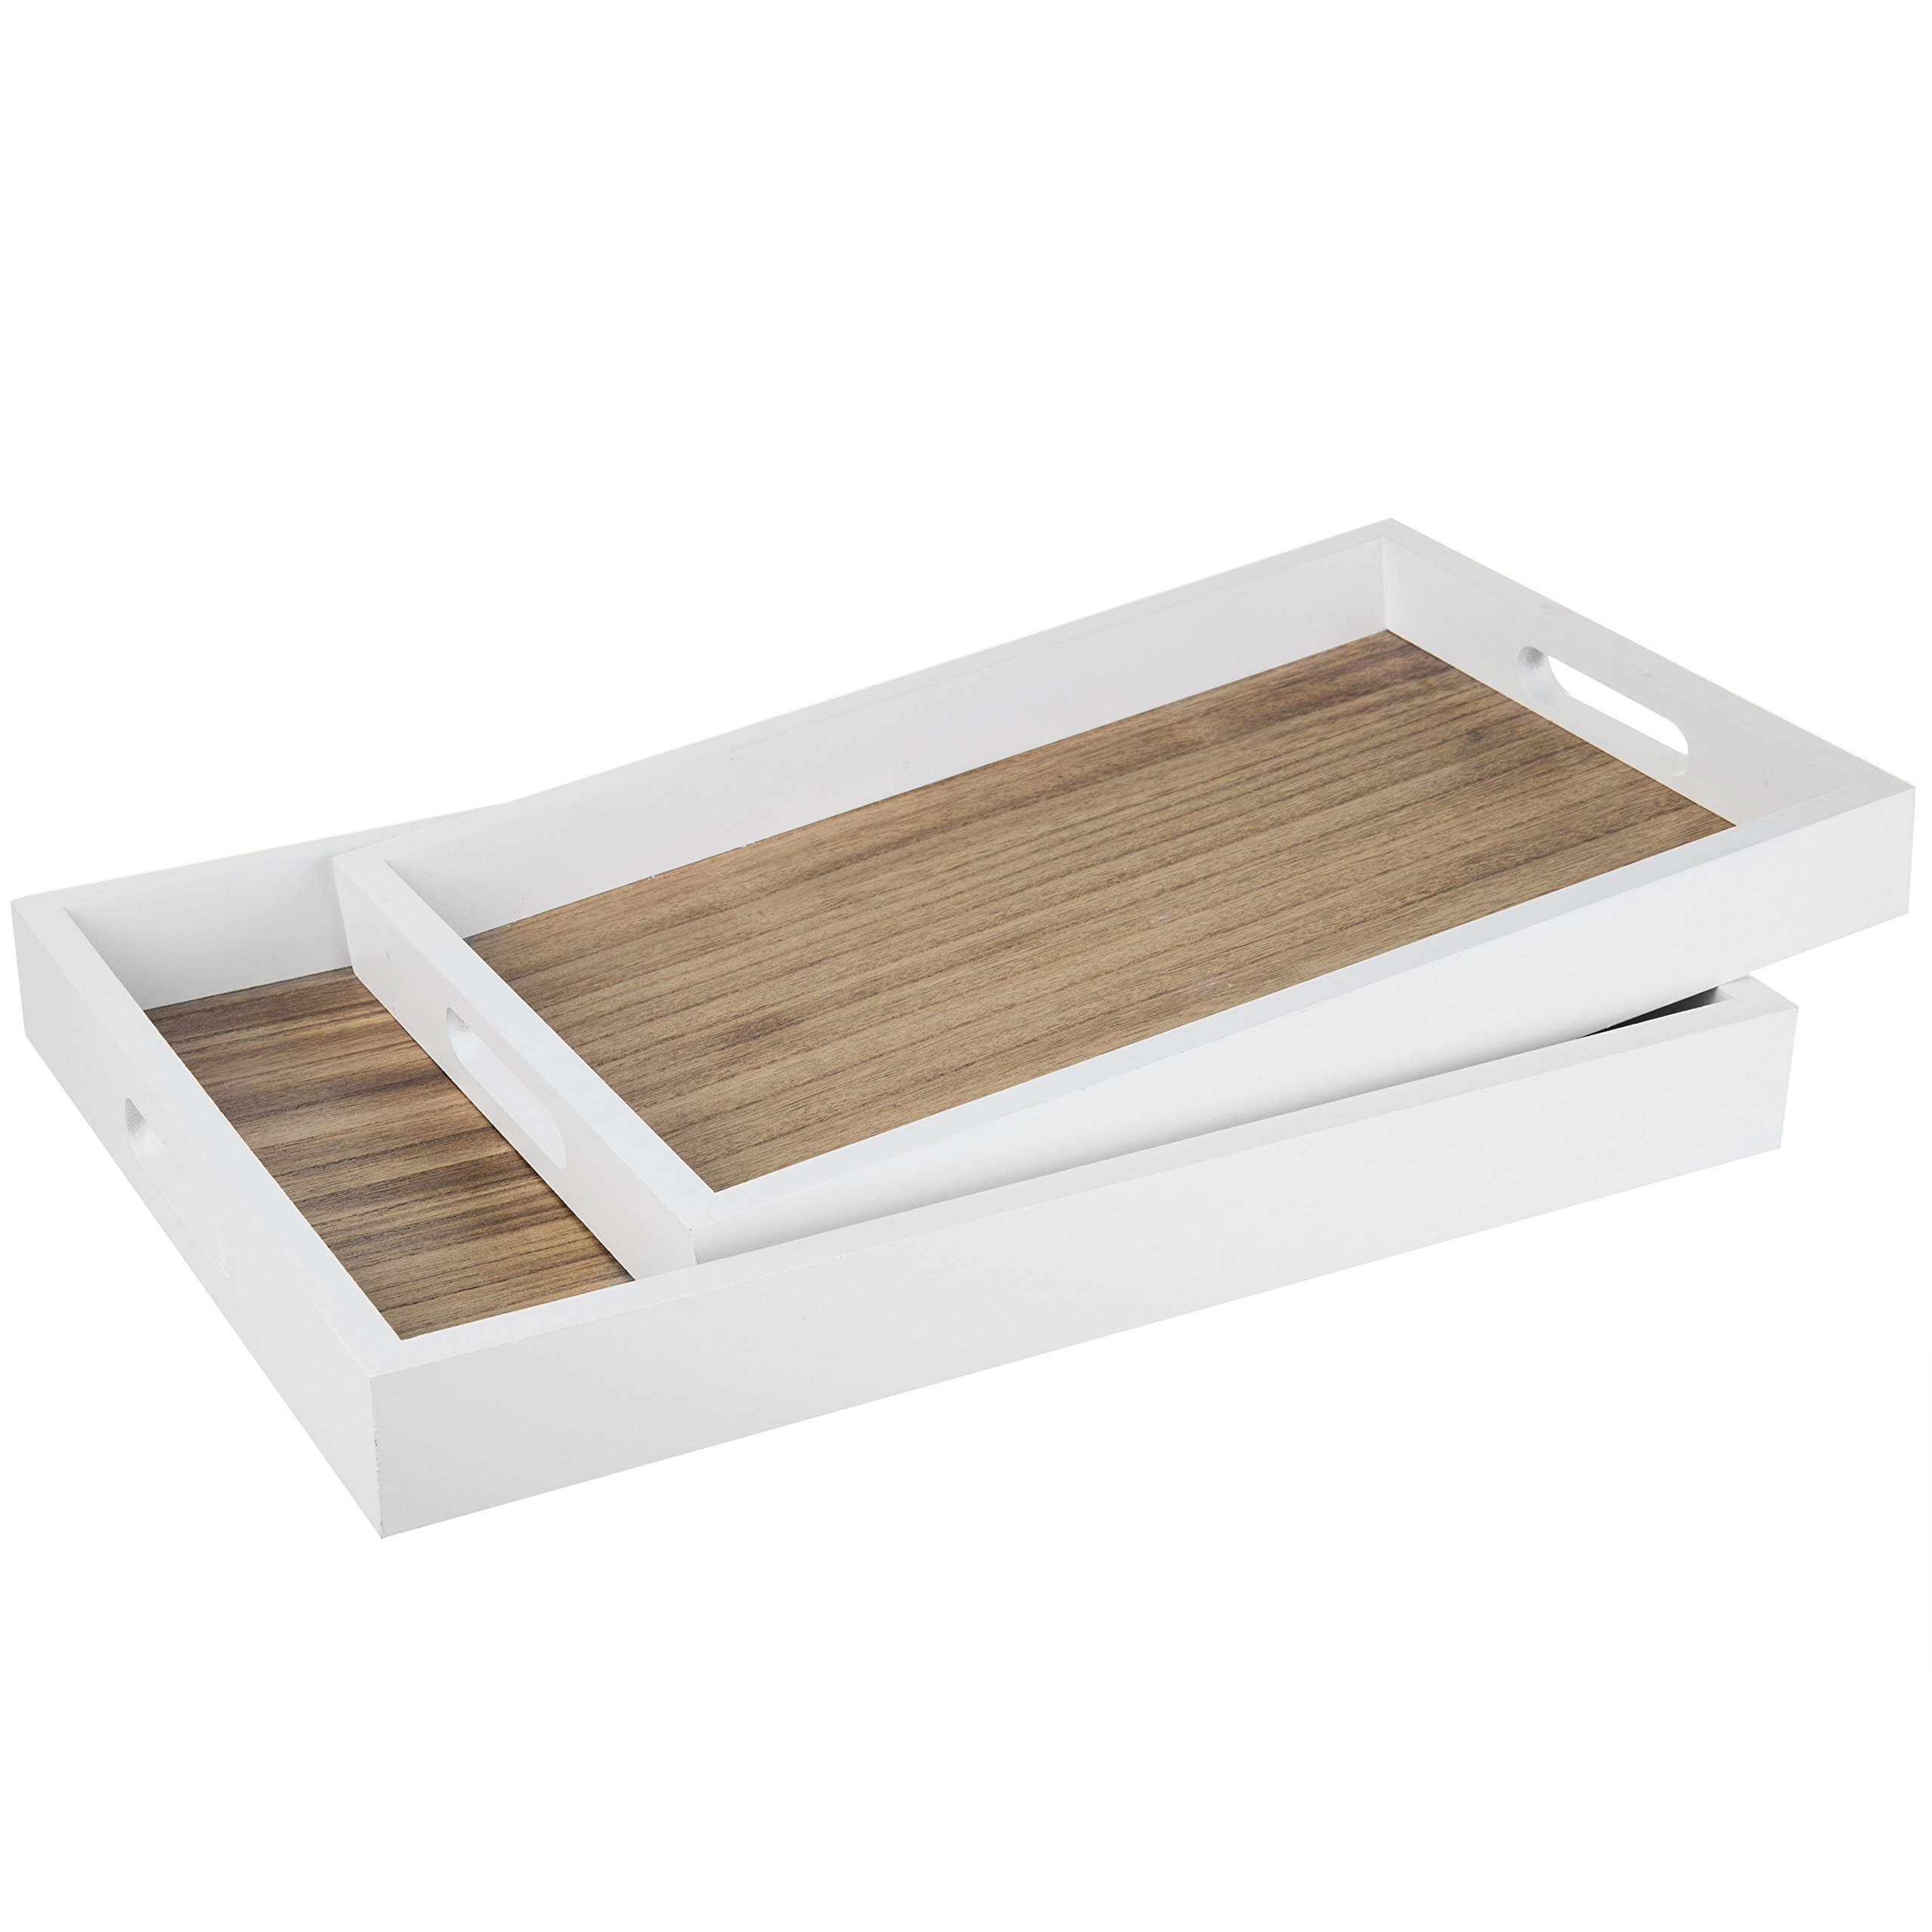 MyGift Decorative Natural Wood Breakfast Serving Tray with Cutout Handles, Brown/White - 16 X 11 Inch, Set of 2